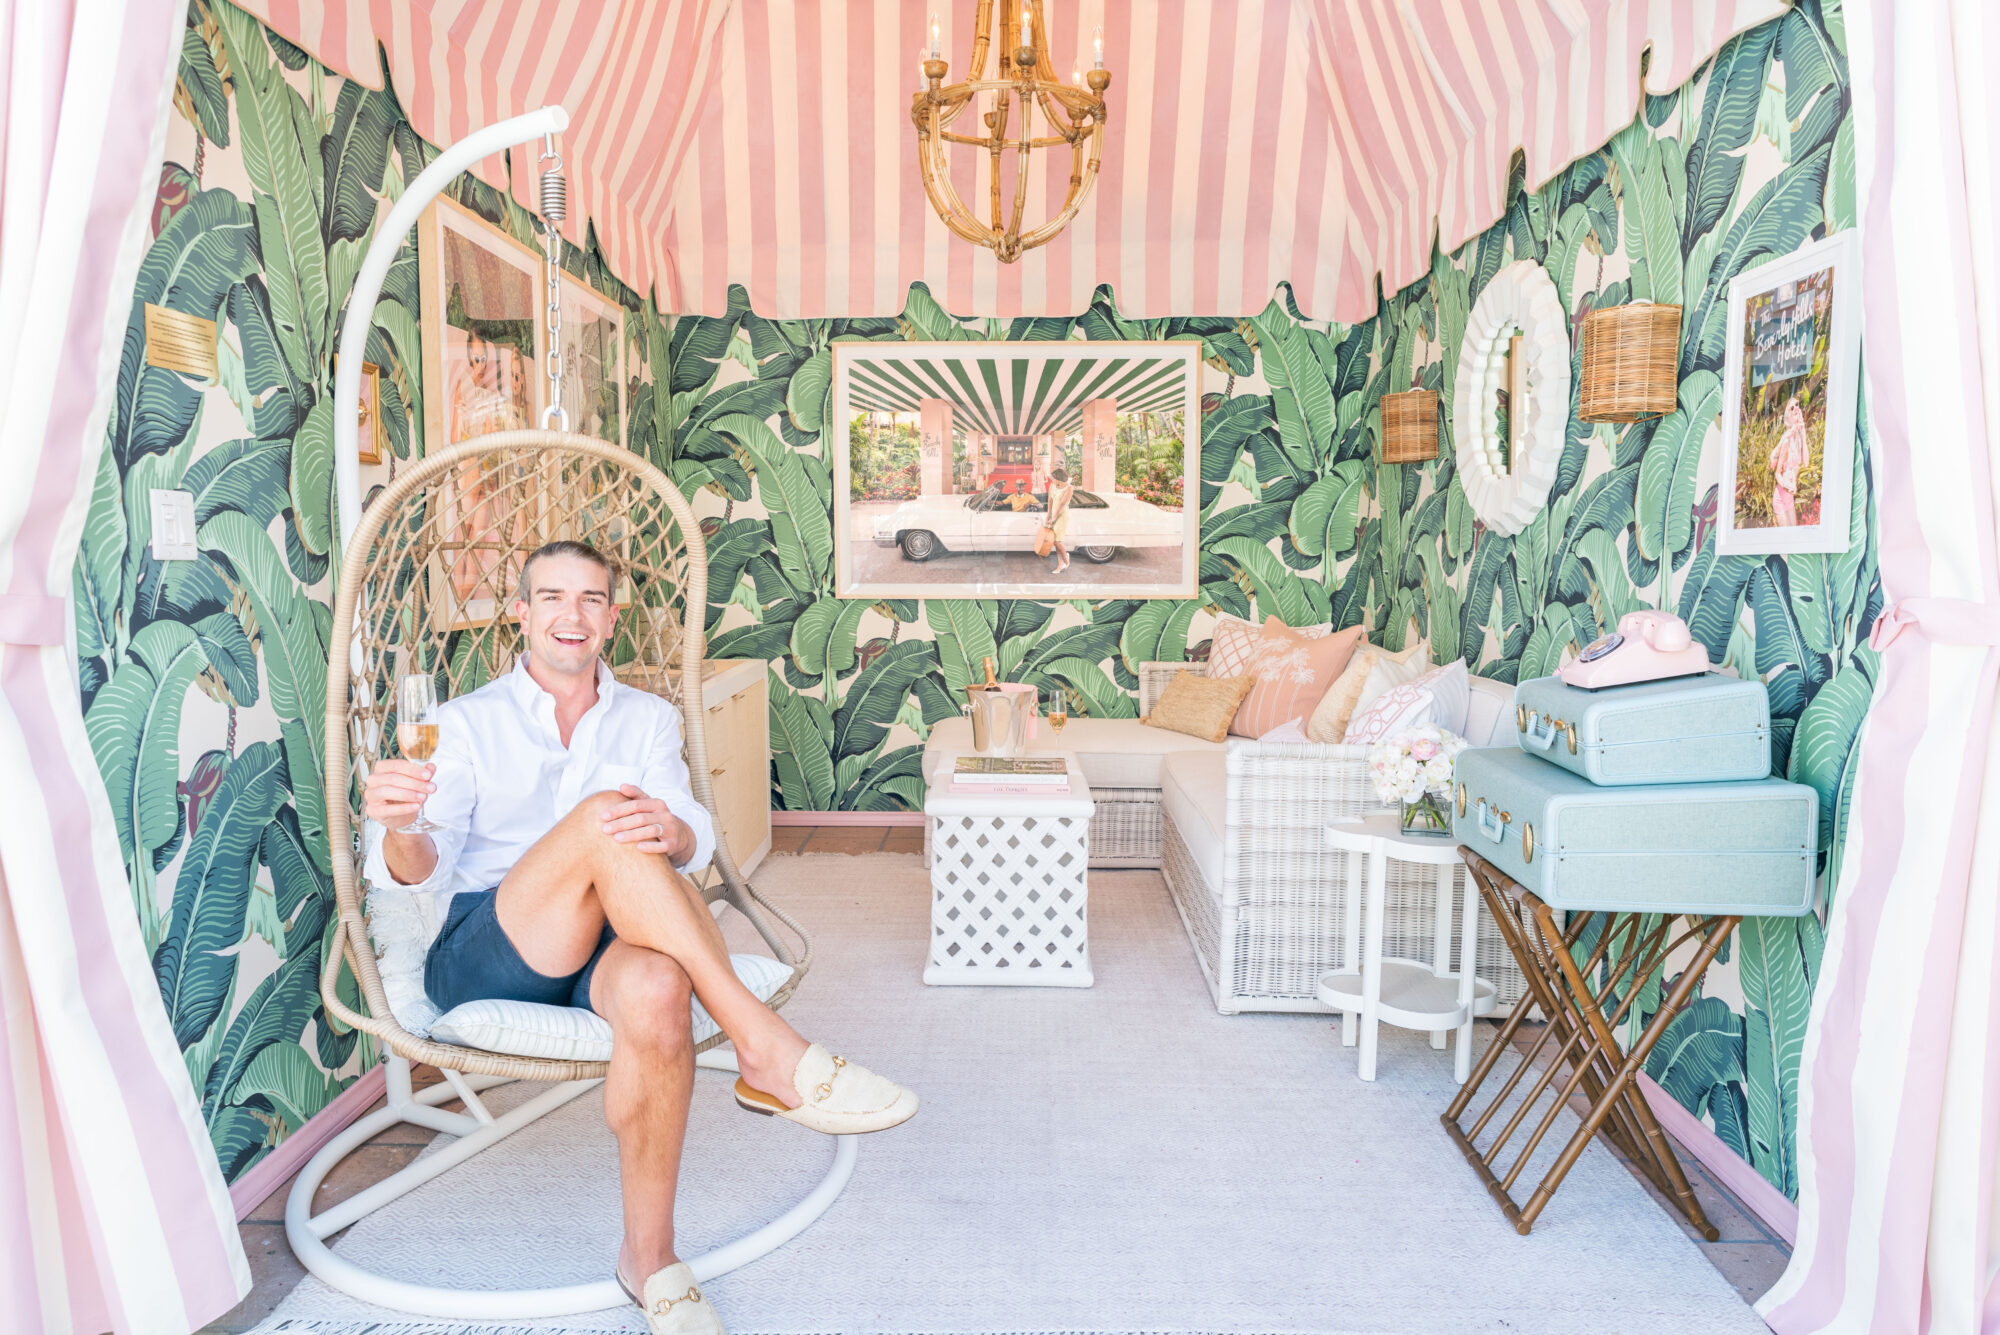 Gray Malin sits among his finished cabana